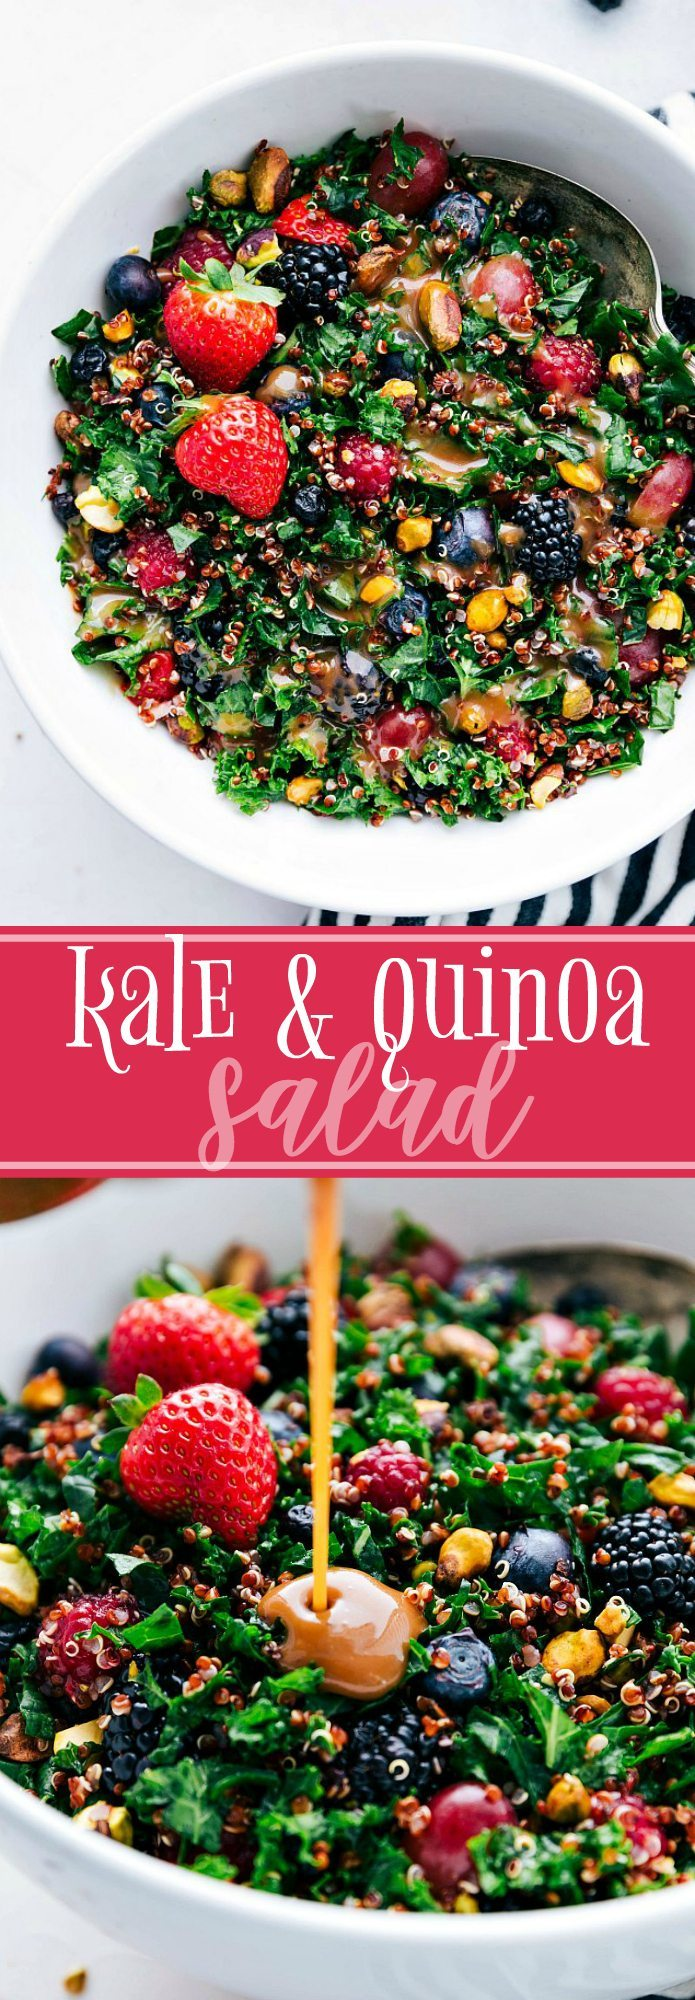 The ultimate BEST EVER kale and quinoa salad! Healthy and easy to make! via chelseasmessyapron.com | #healthy #kale #quinoa #salad #easy #quick #berries #health #dressing